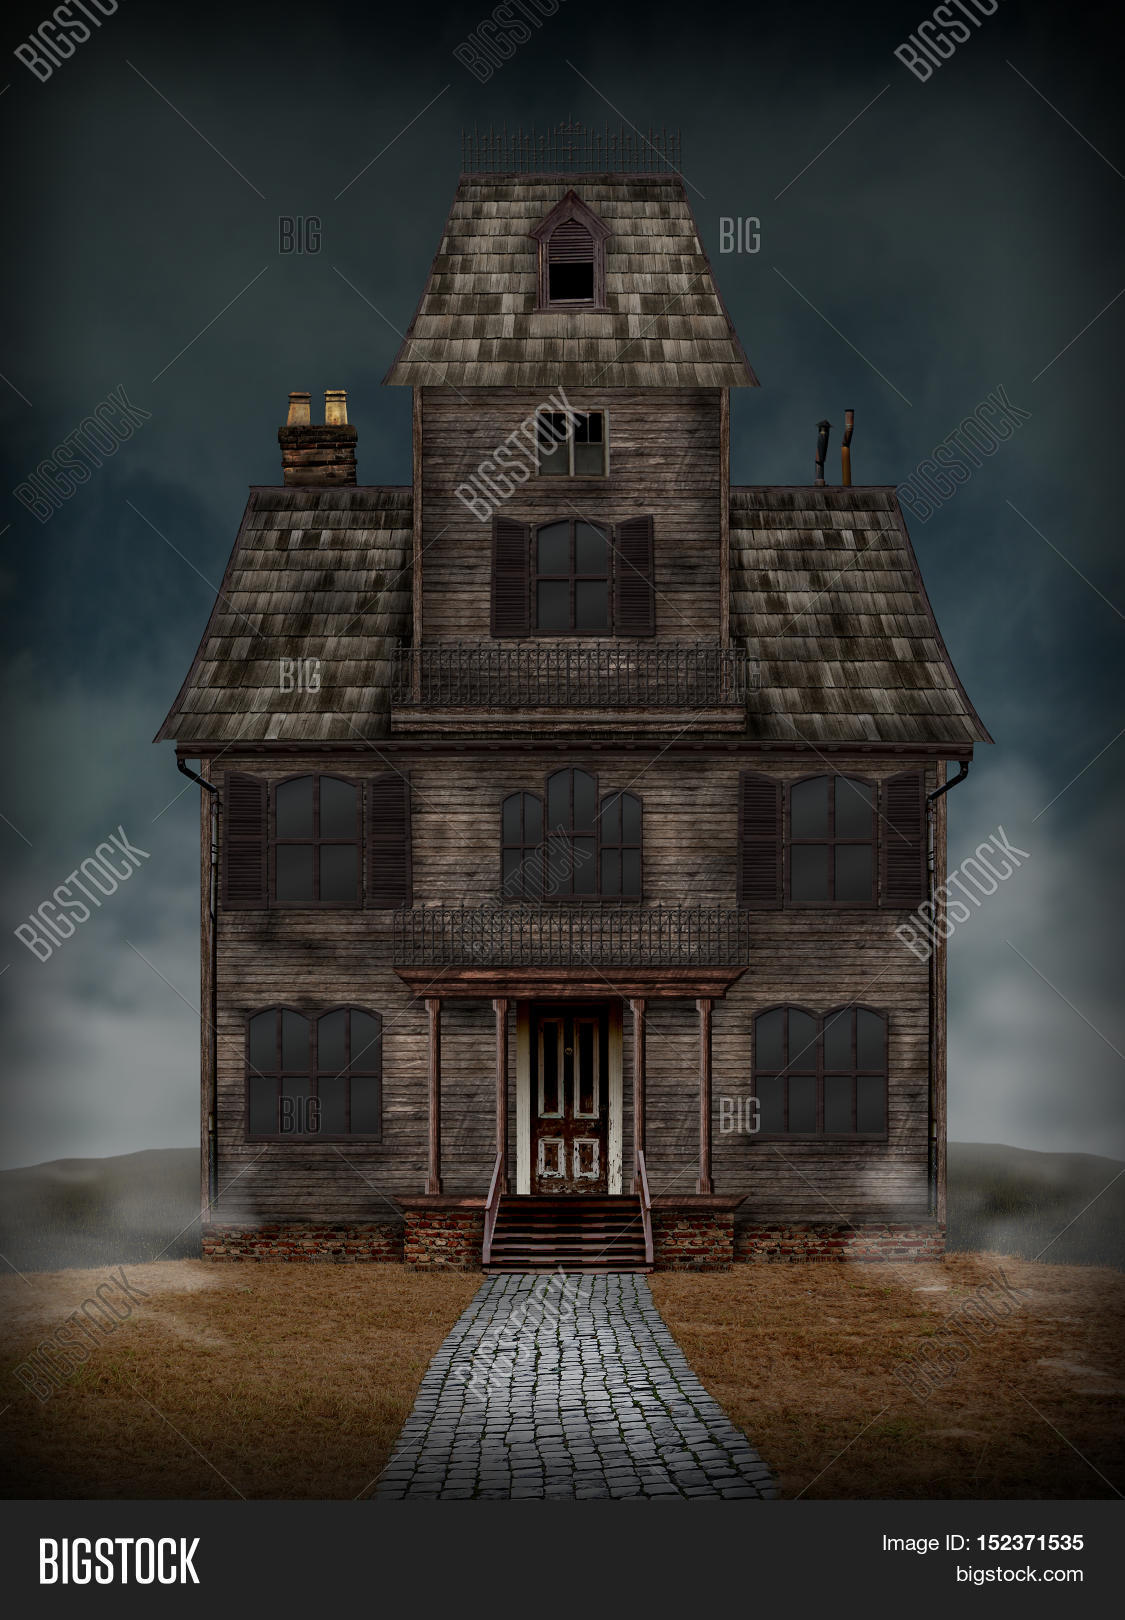 Haunted House Scary Old Good For Use In Halloween Or Horror Projects